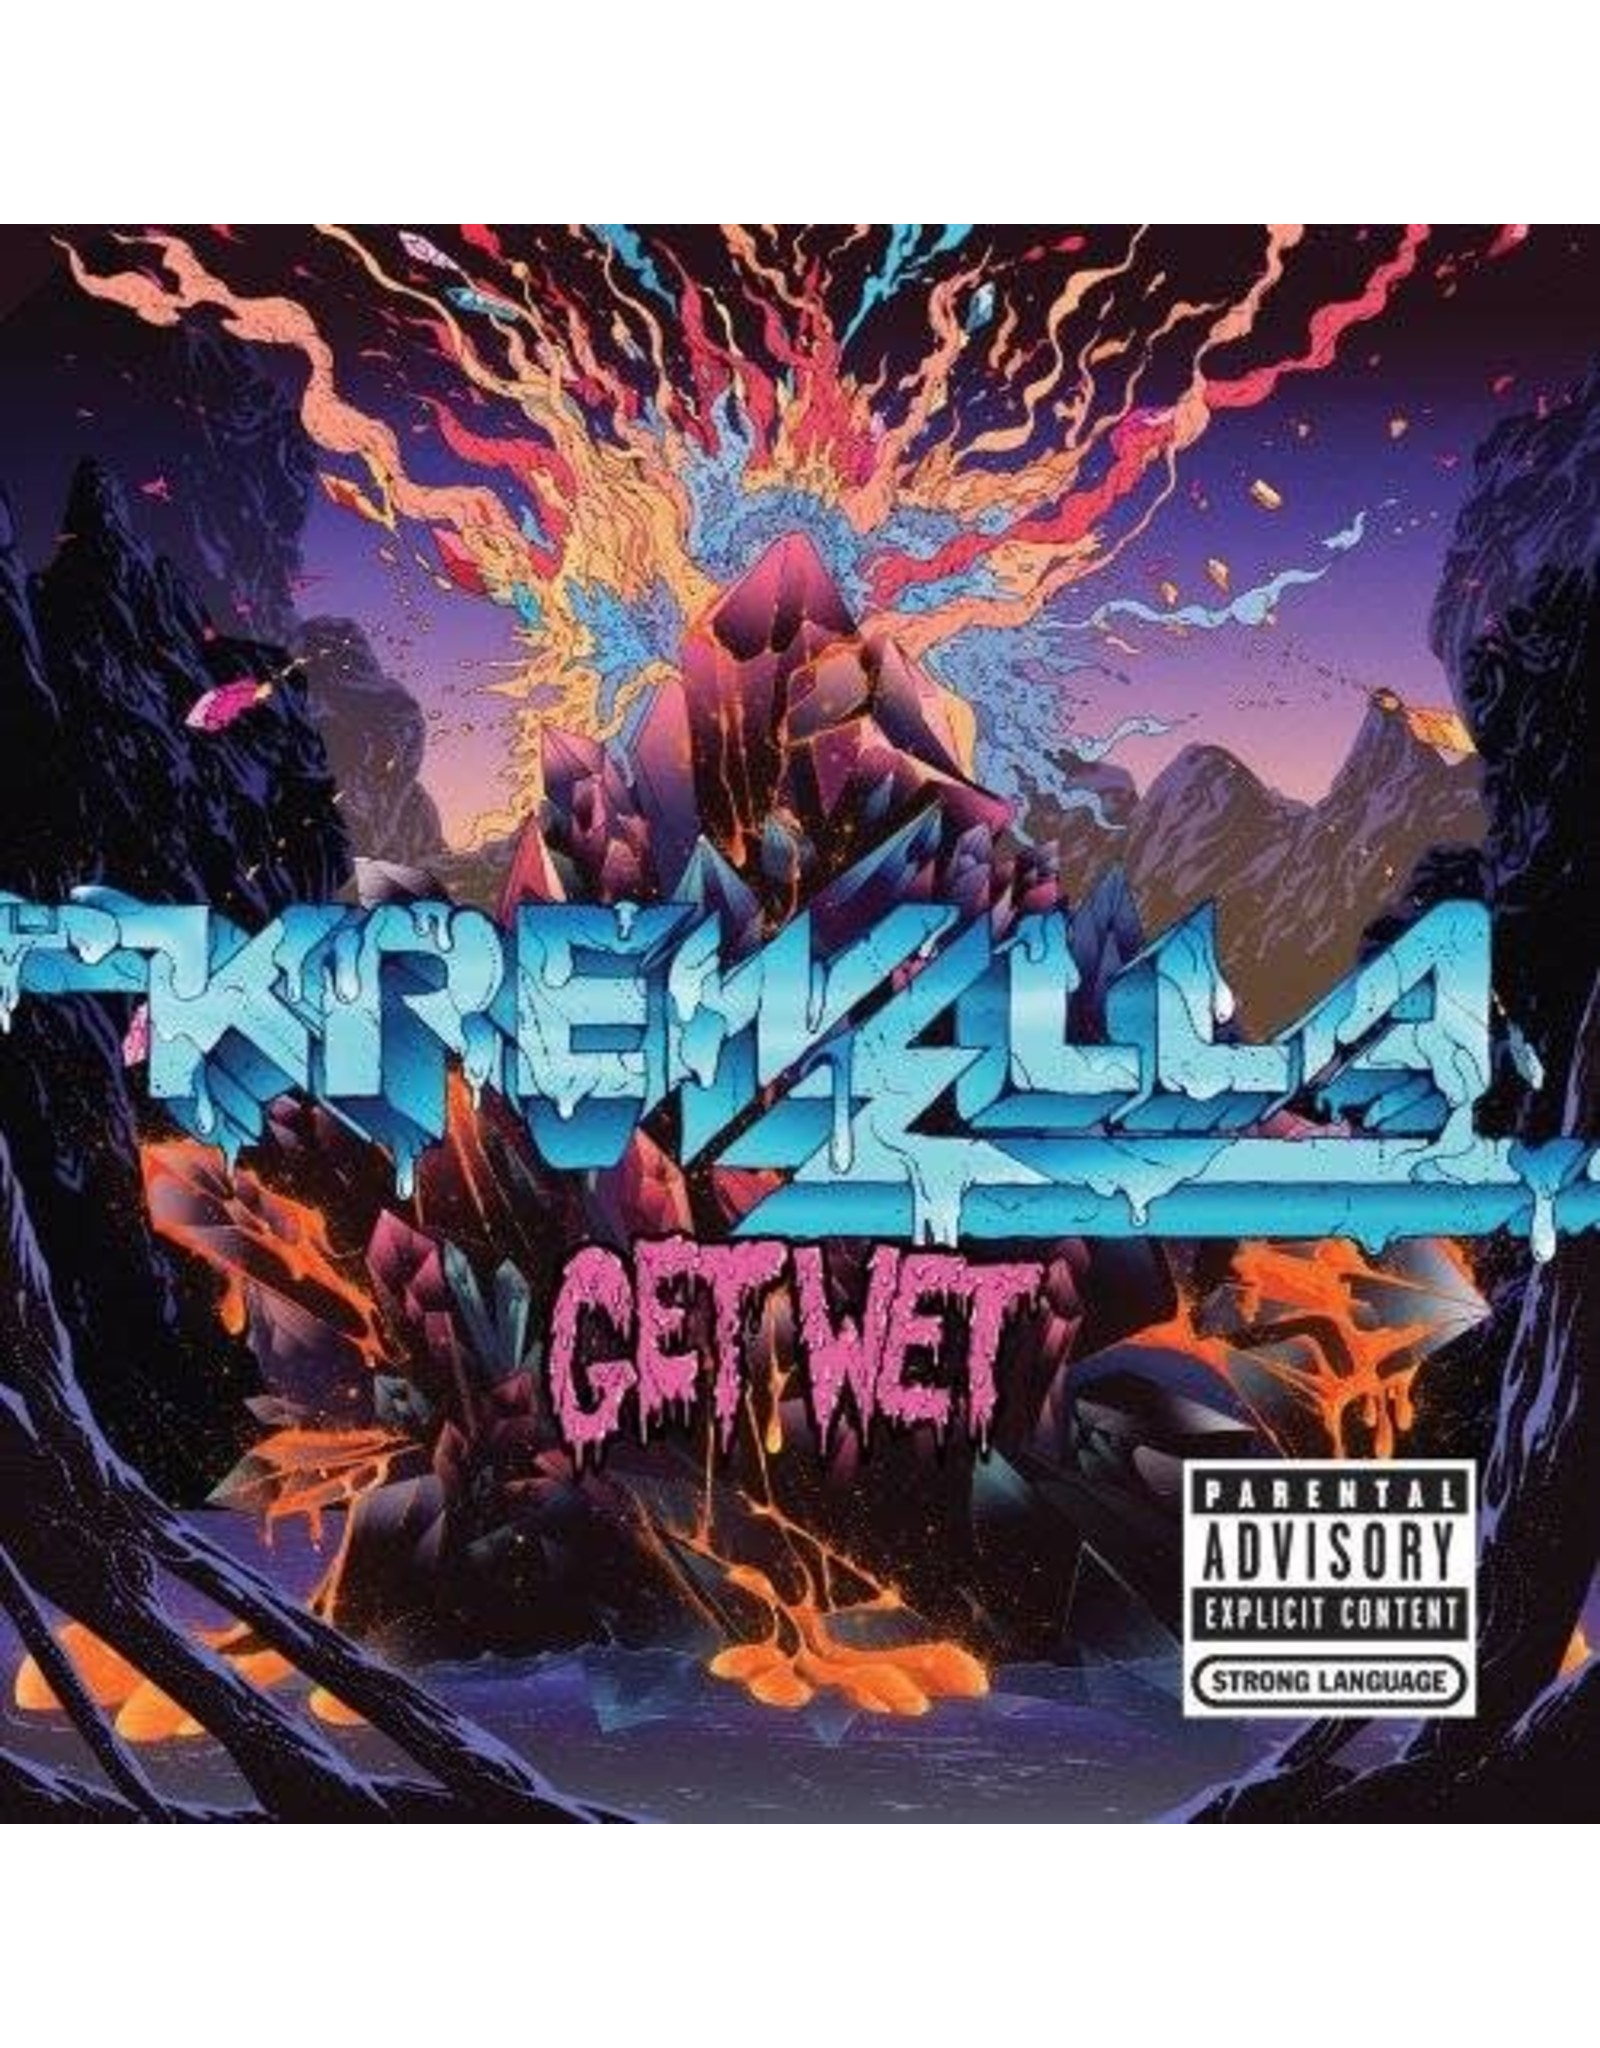 Krewella - Get Well CD